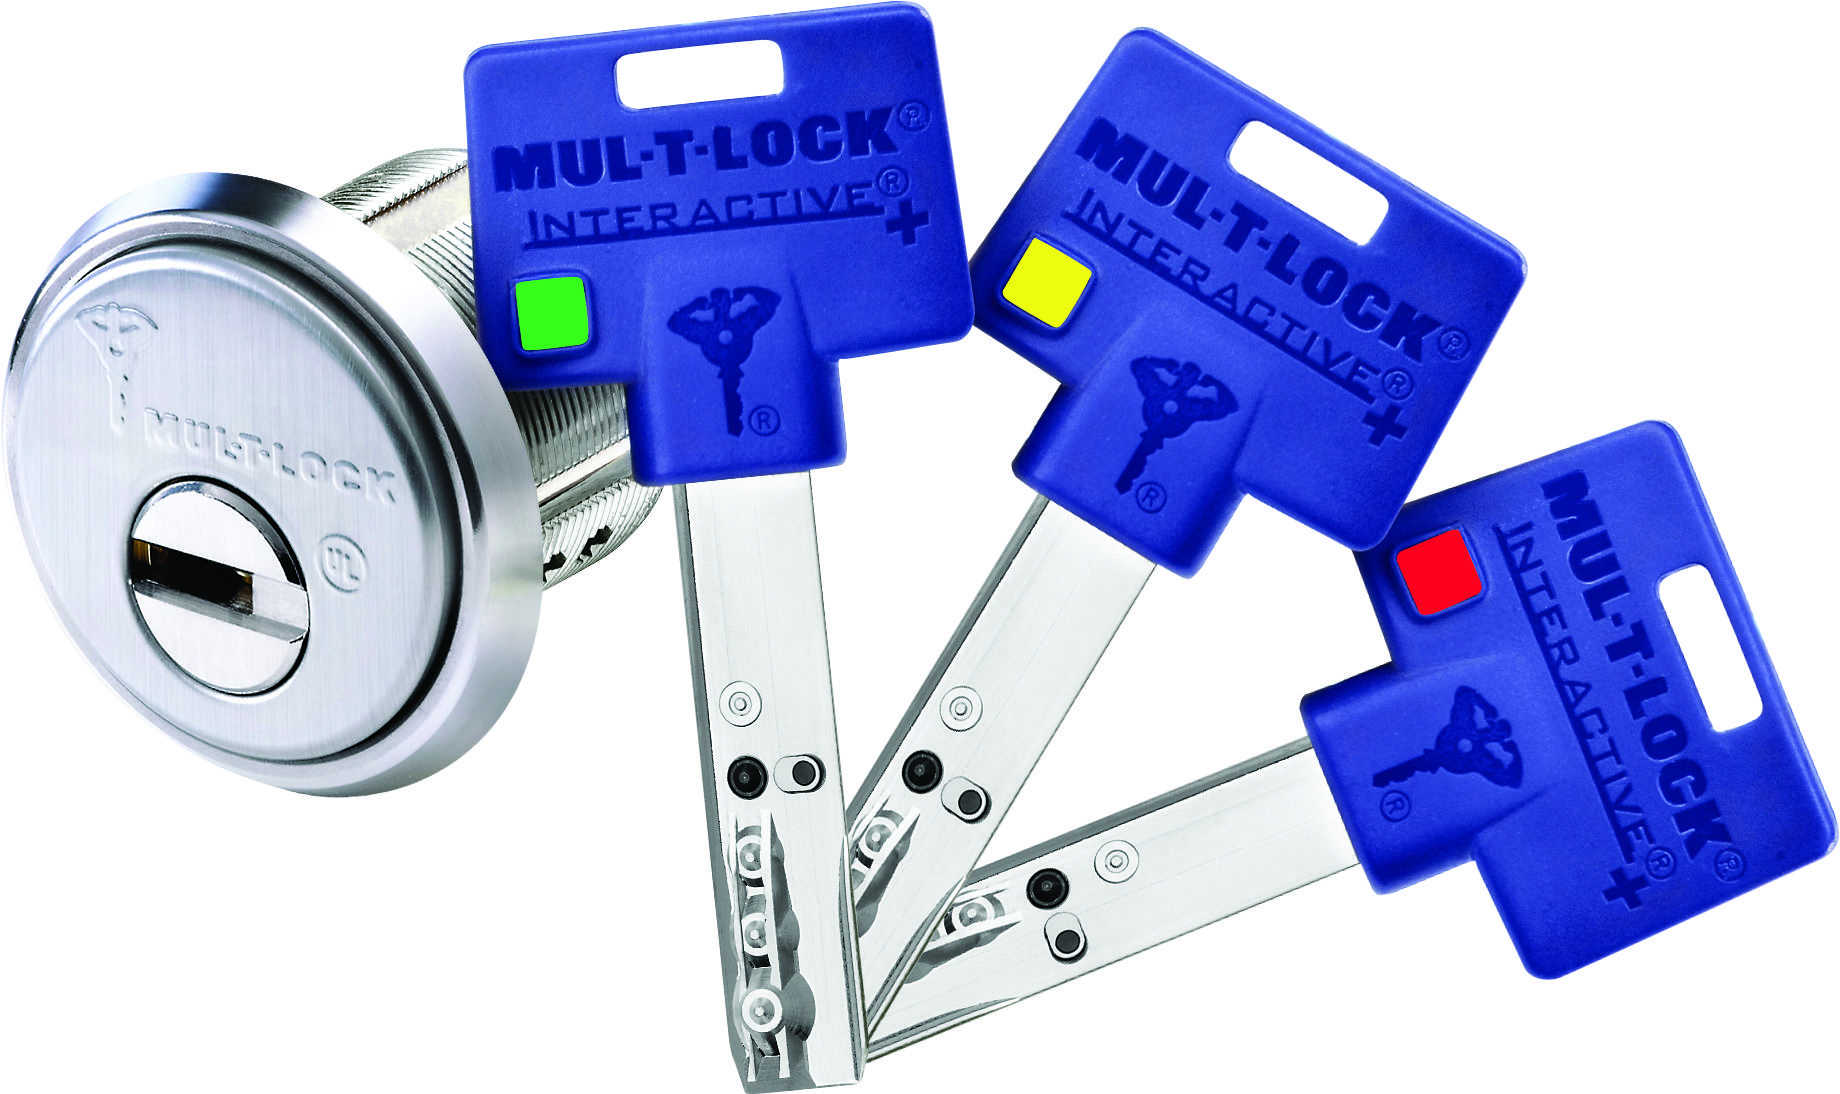 3in1 keying gives you the ability to easily rekey your own